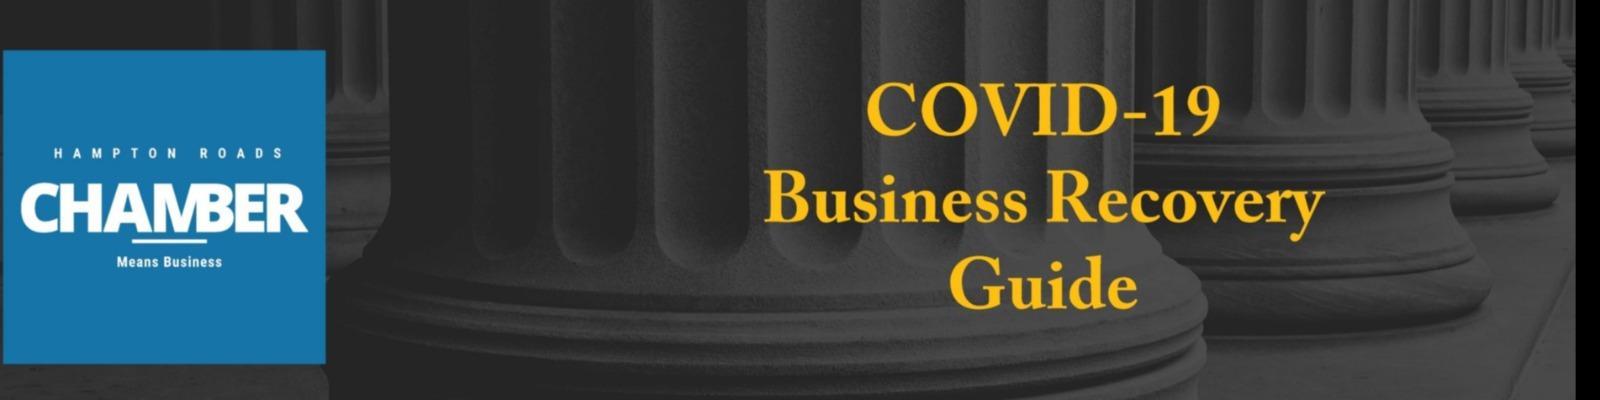 COVID-19 Business Recovery Guide for Hampton Roads Cover